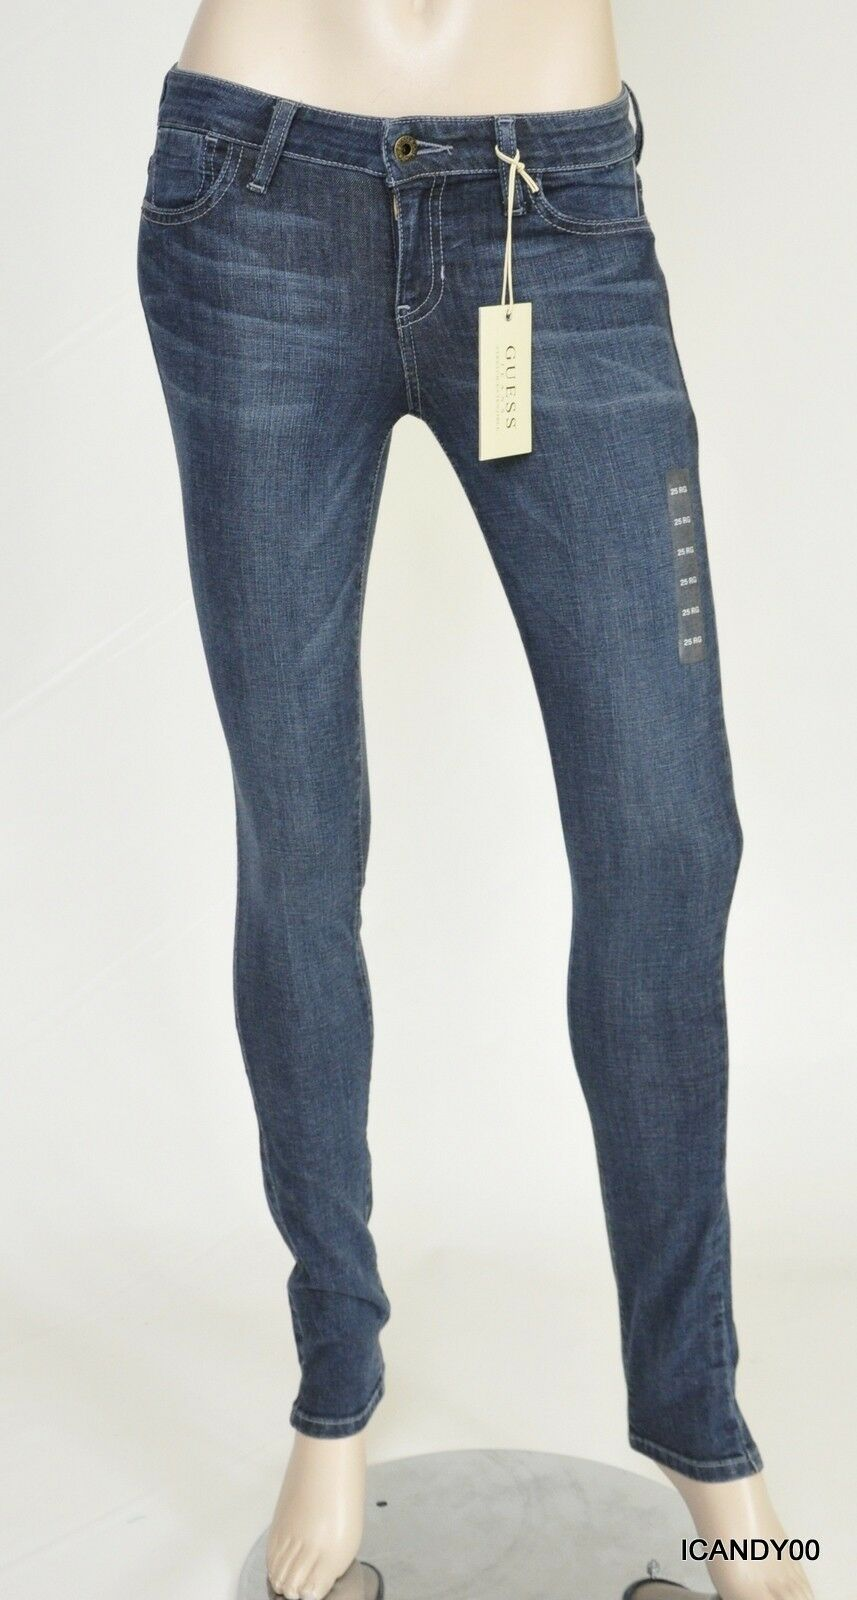 Nwt  Guess Mid Rise Skinny Slim Fit Jeans Pants Trousers Admirable Wash 25